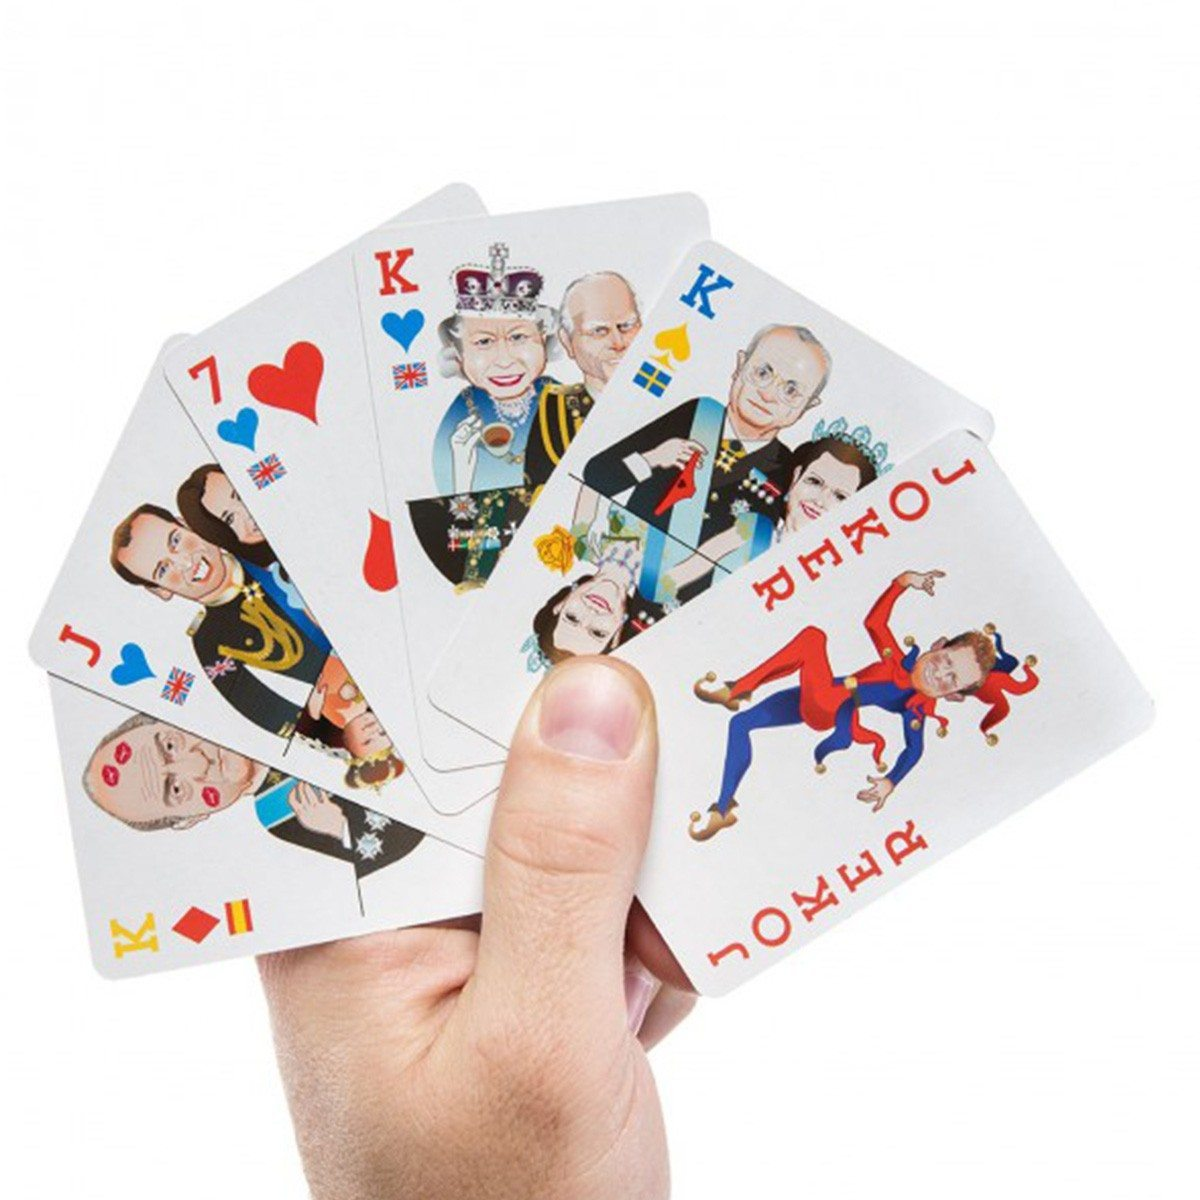 Royal Flush - Jeu de cartes